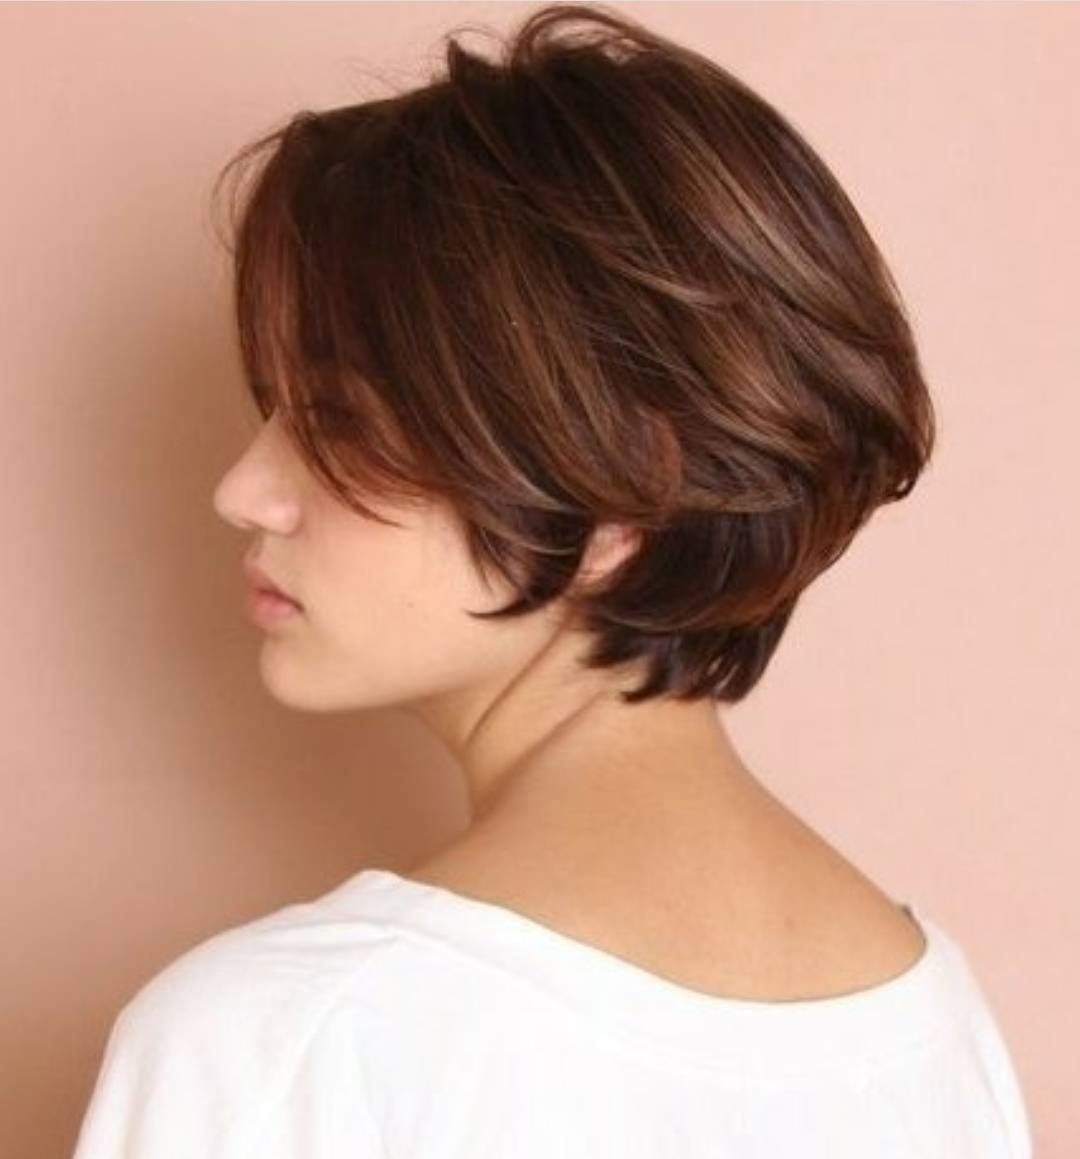 Short Bob Style Hair Beauteous 10 Chic Short Bob Haircuts That Balance Your Face Shape  Short .